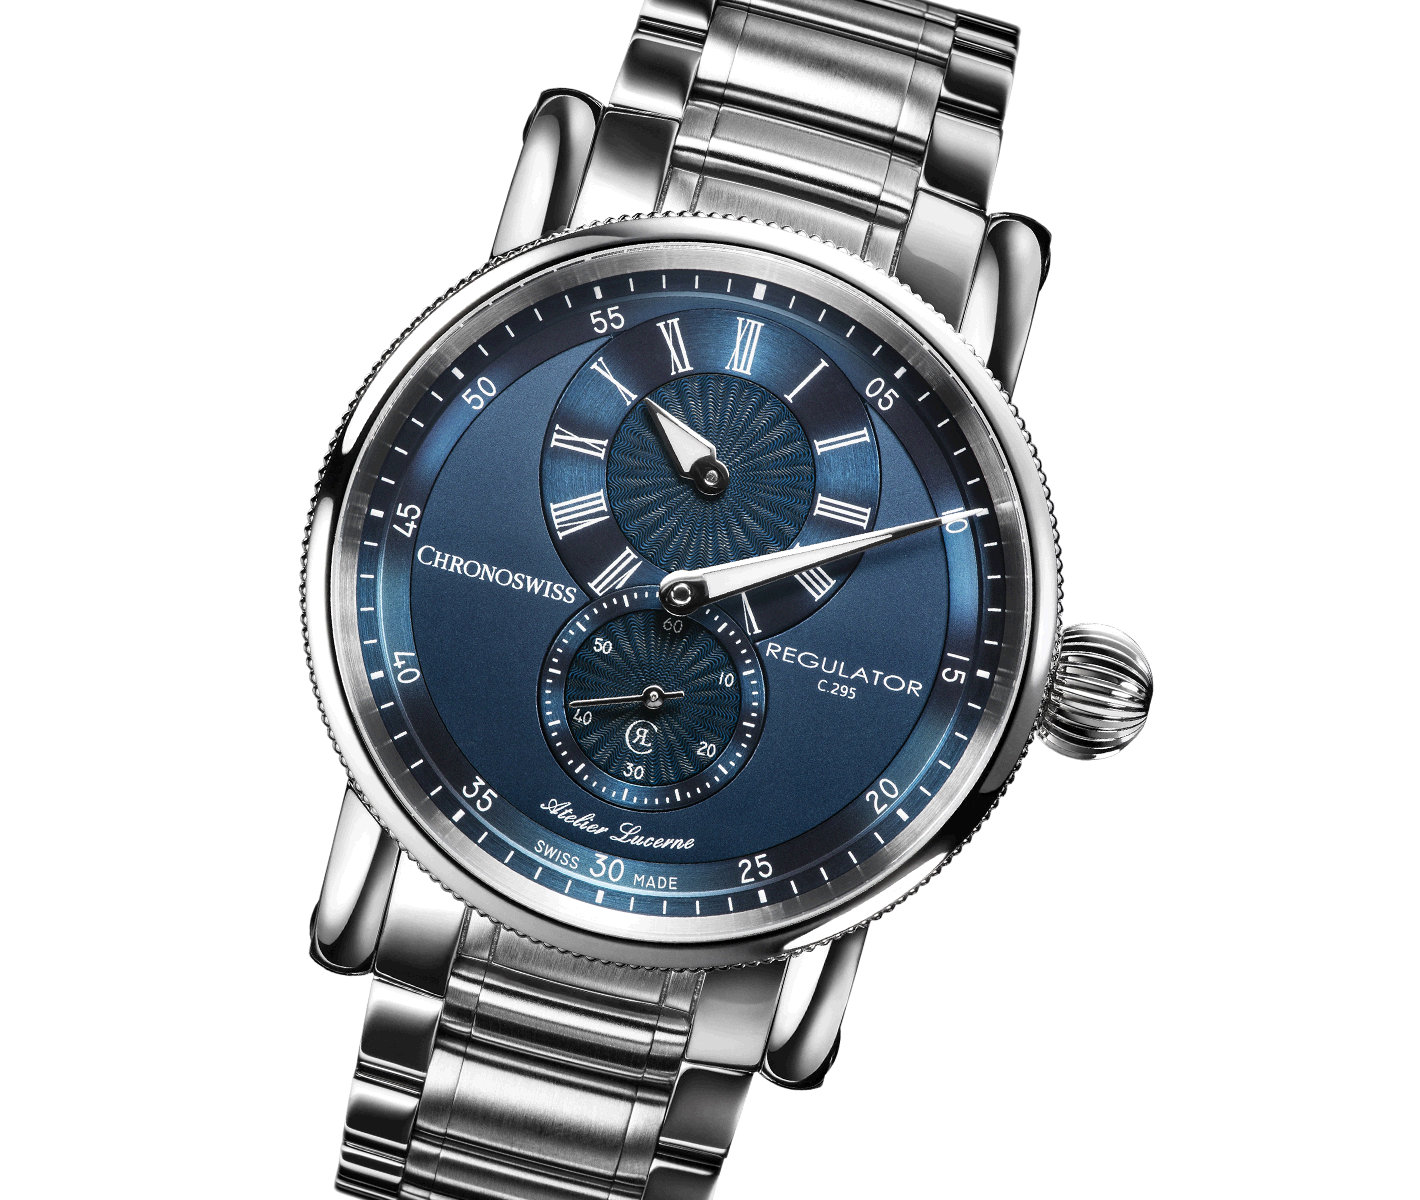 https://chronoswiss.com/storage/55/CH-8773-BL_Regulator-Classic_front_tw_left.png